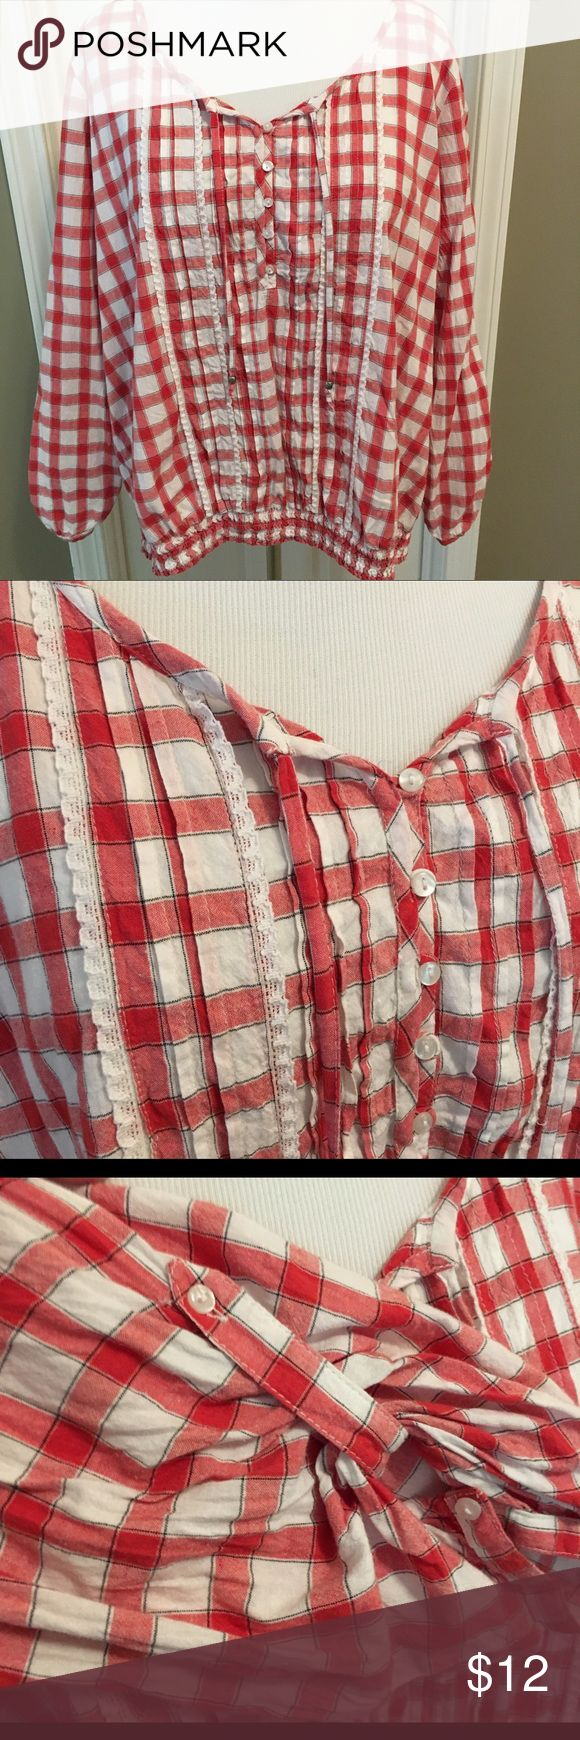 Plaid shirt - summer cute styling - denim ready  Red and white fresh plaid. Button, lace and tie accents. Sleeves can be worn down or rolled up. Ruched bottom makes for flattering styling. Tops